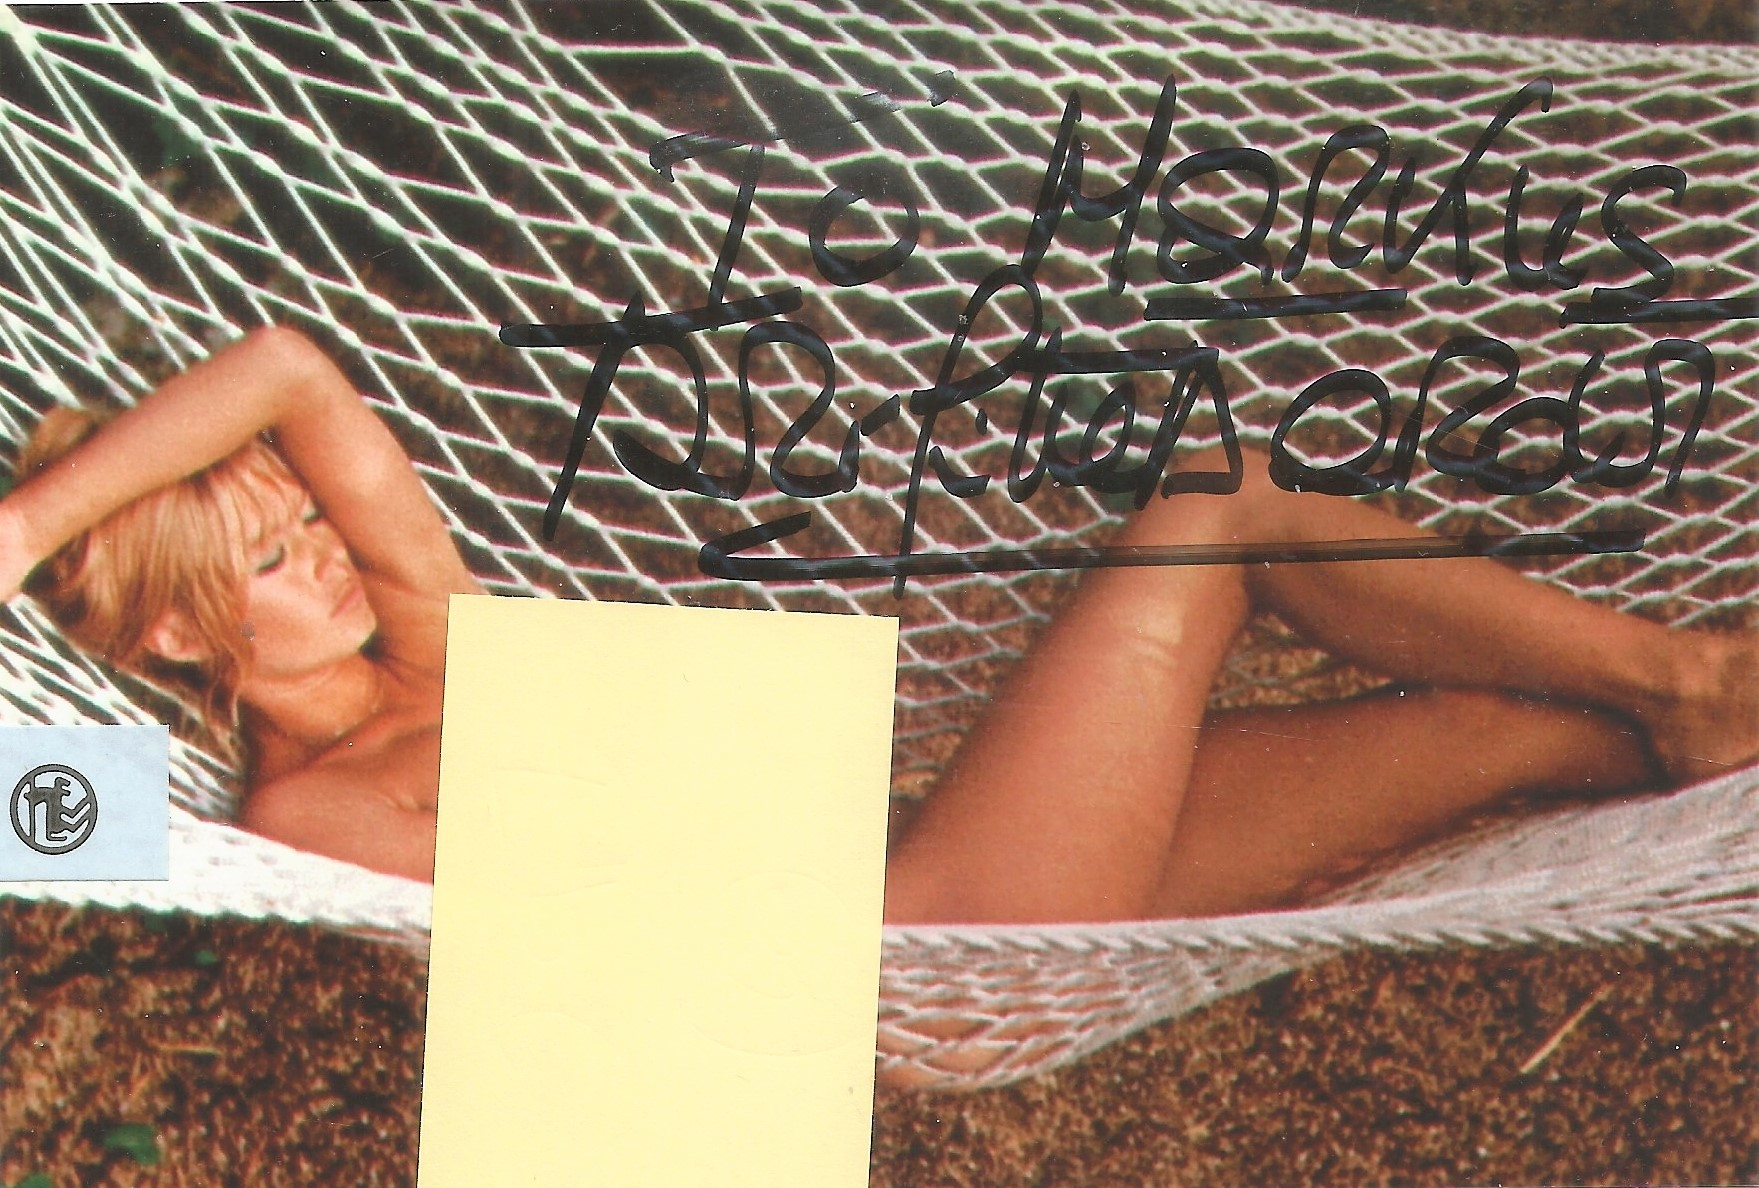 Brigitte Bardot signed 6x4 colour naked photo. Good condition. All autographs come with a